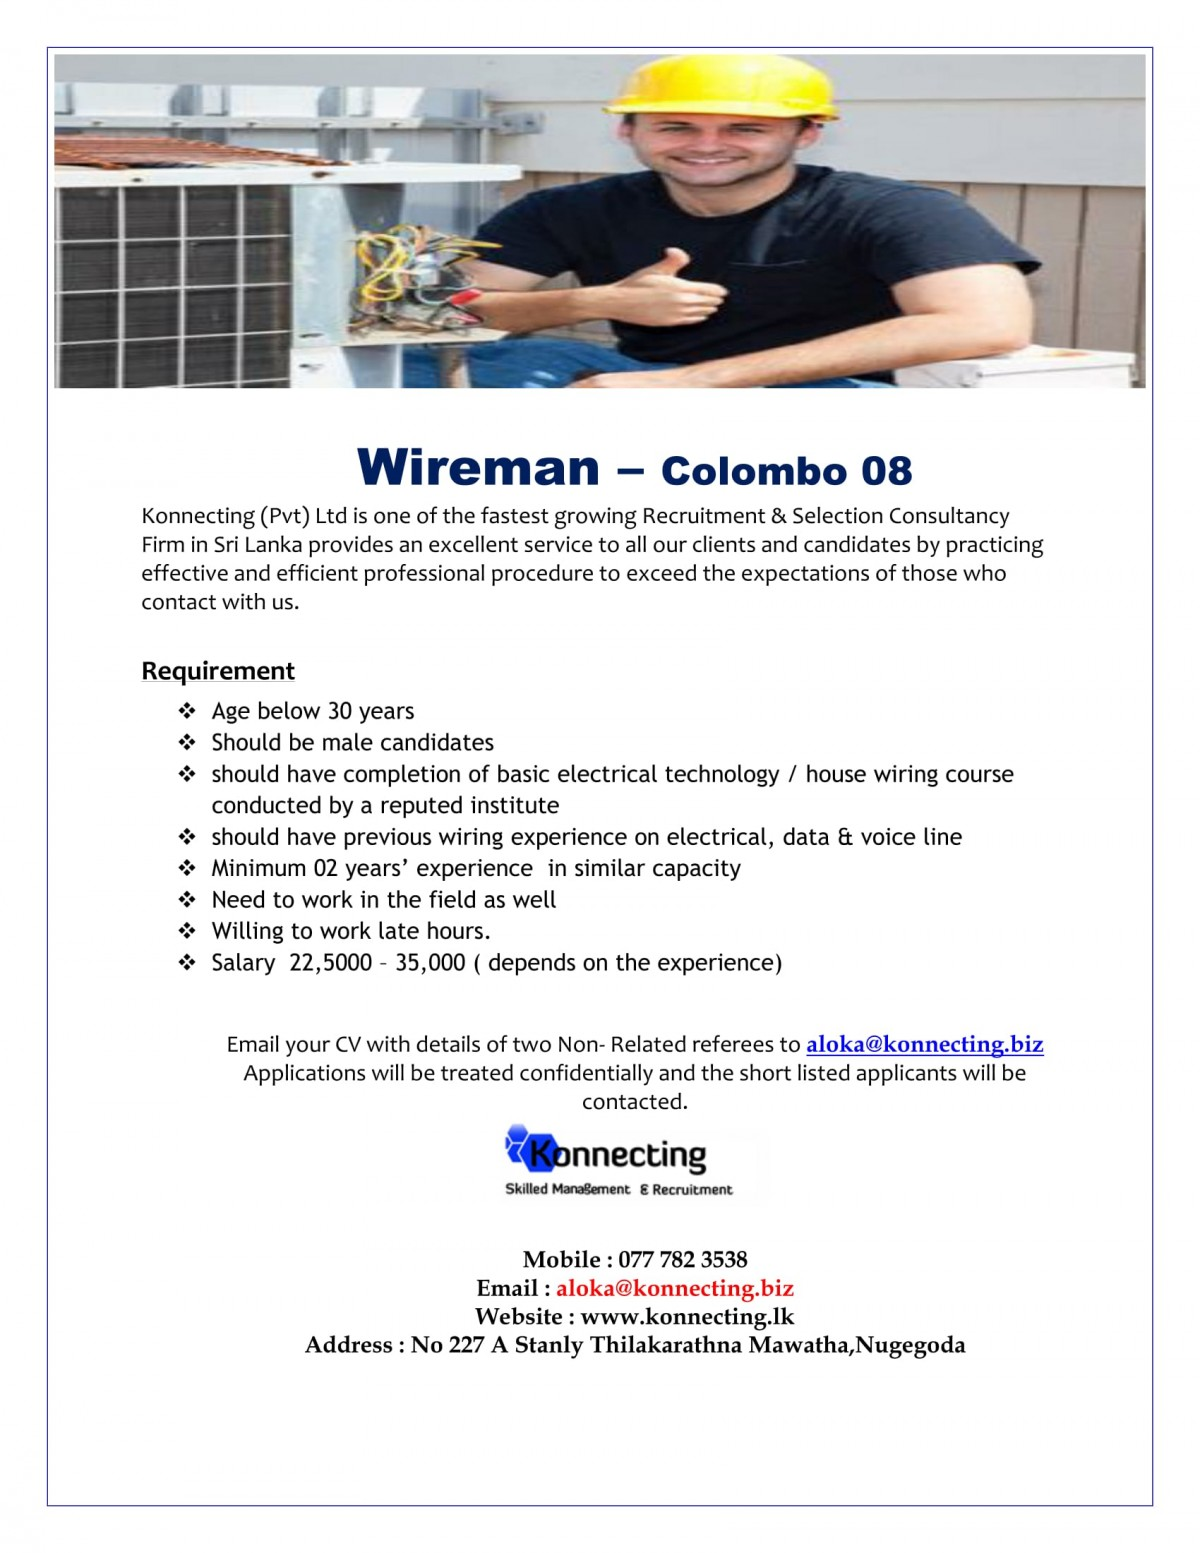 Wireman Job Vacancy In Sri Lanka House Wiring Procedures Should Have Completion Of Basic Electrical Technology Course Conducted By A Reputed Institute Previous Experience On